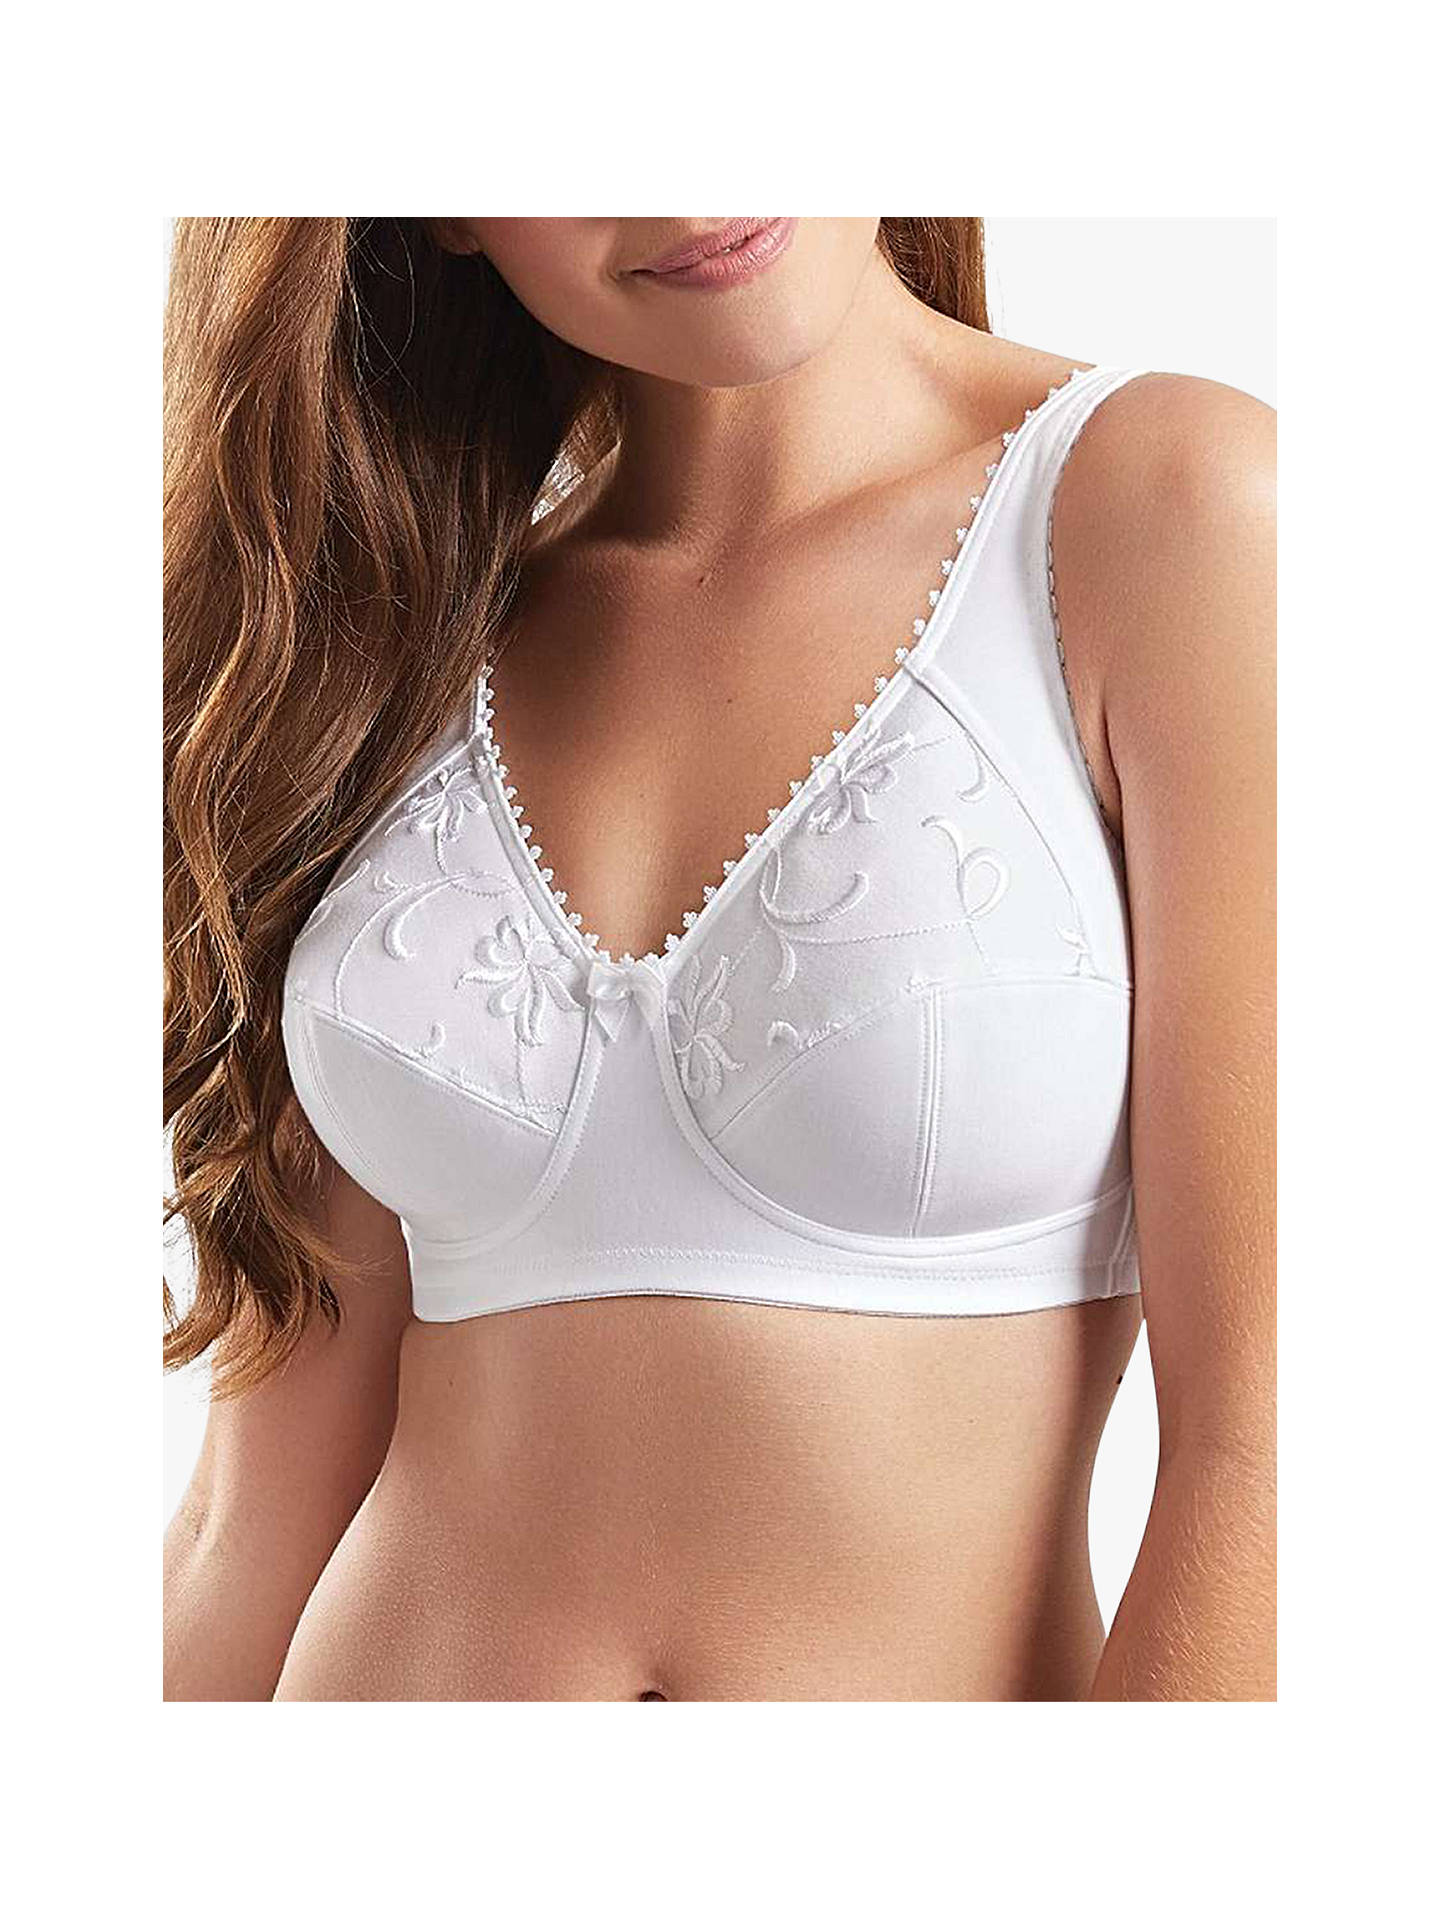 BuyRoyce Grace 513 Cotton Rich Non-Wired Bra 9875c1755